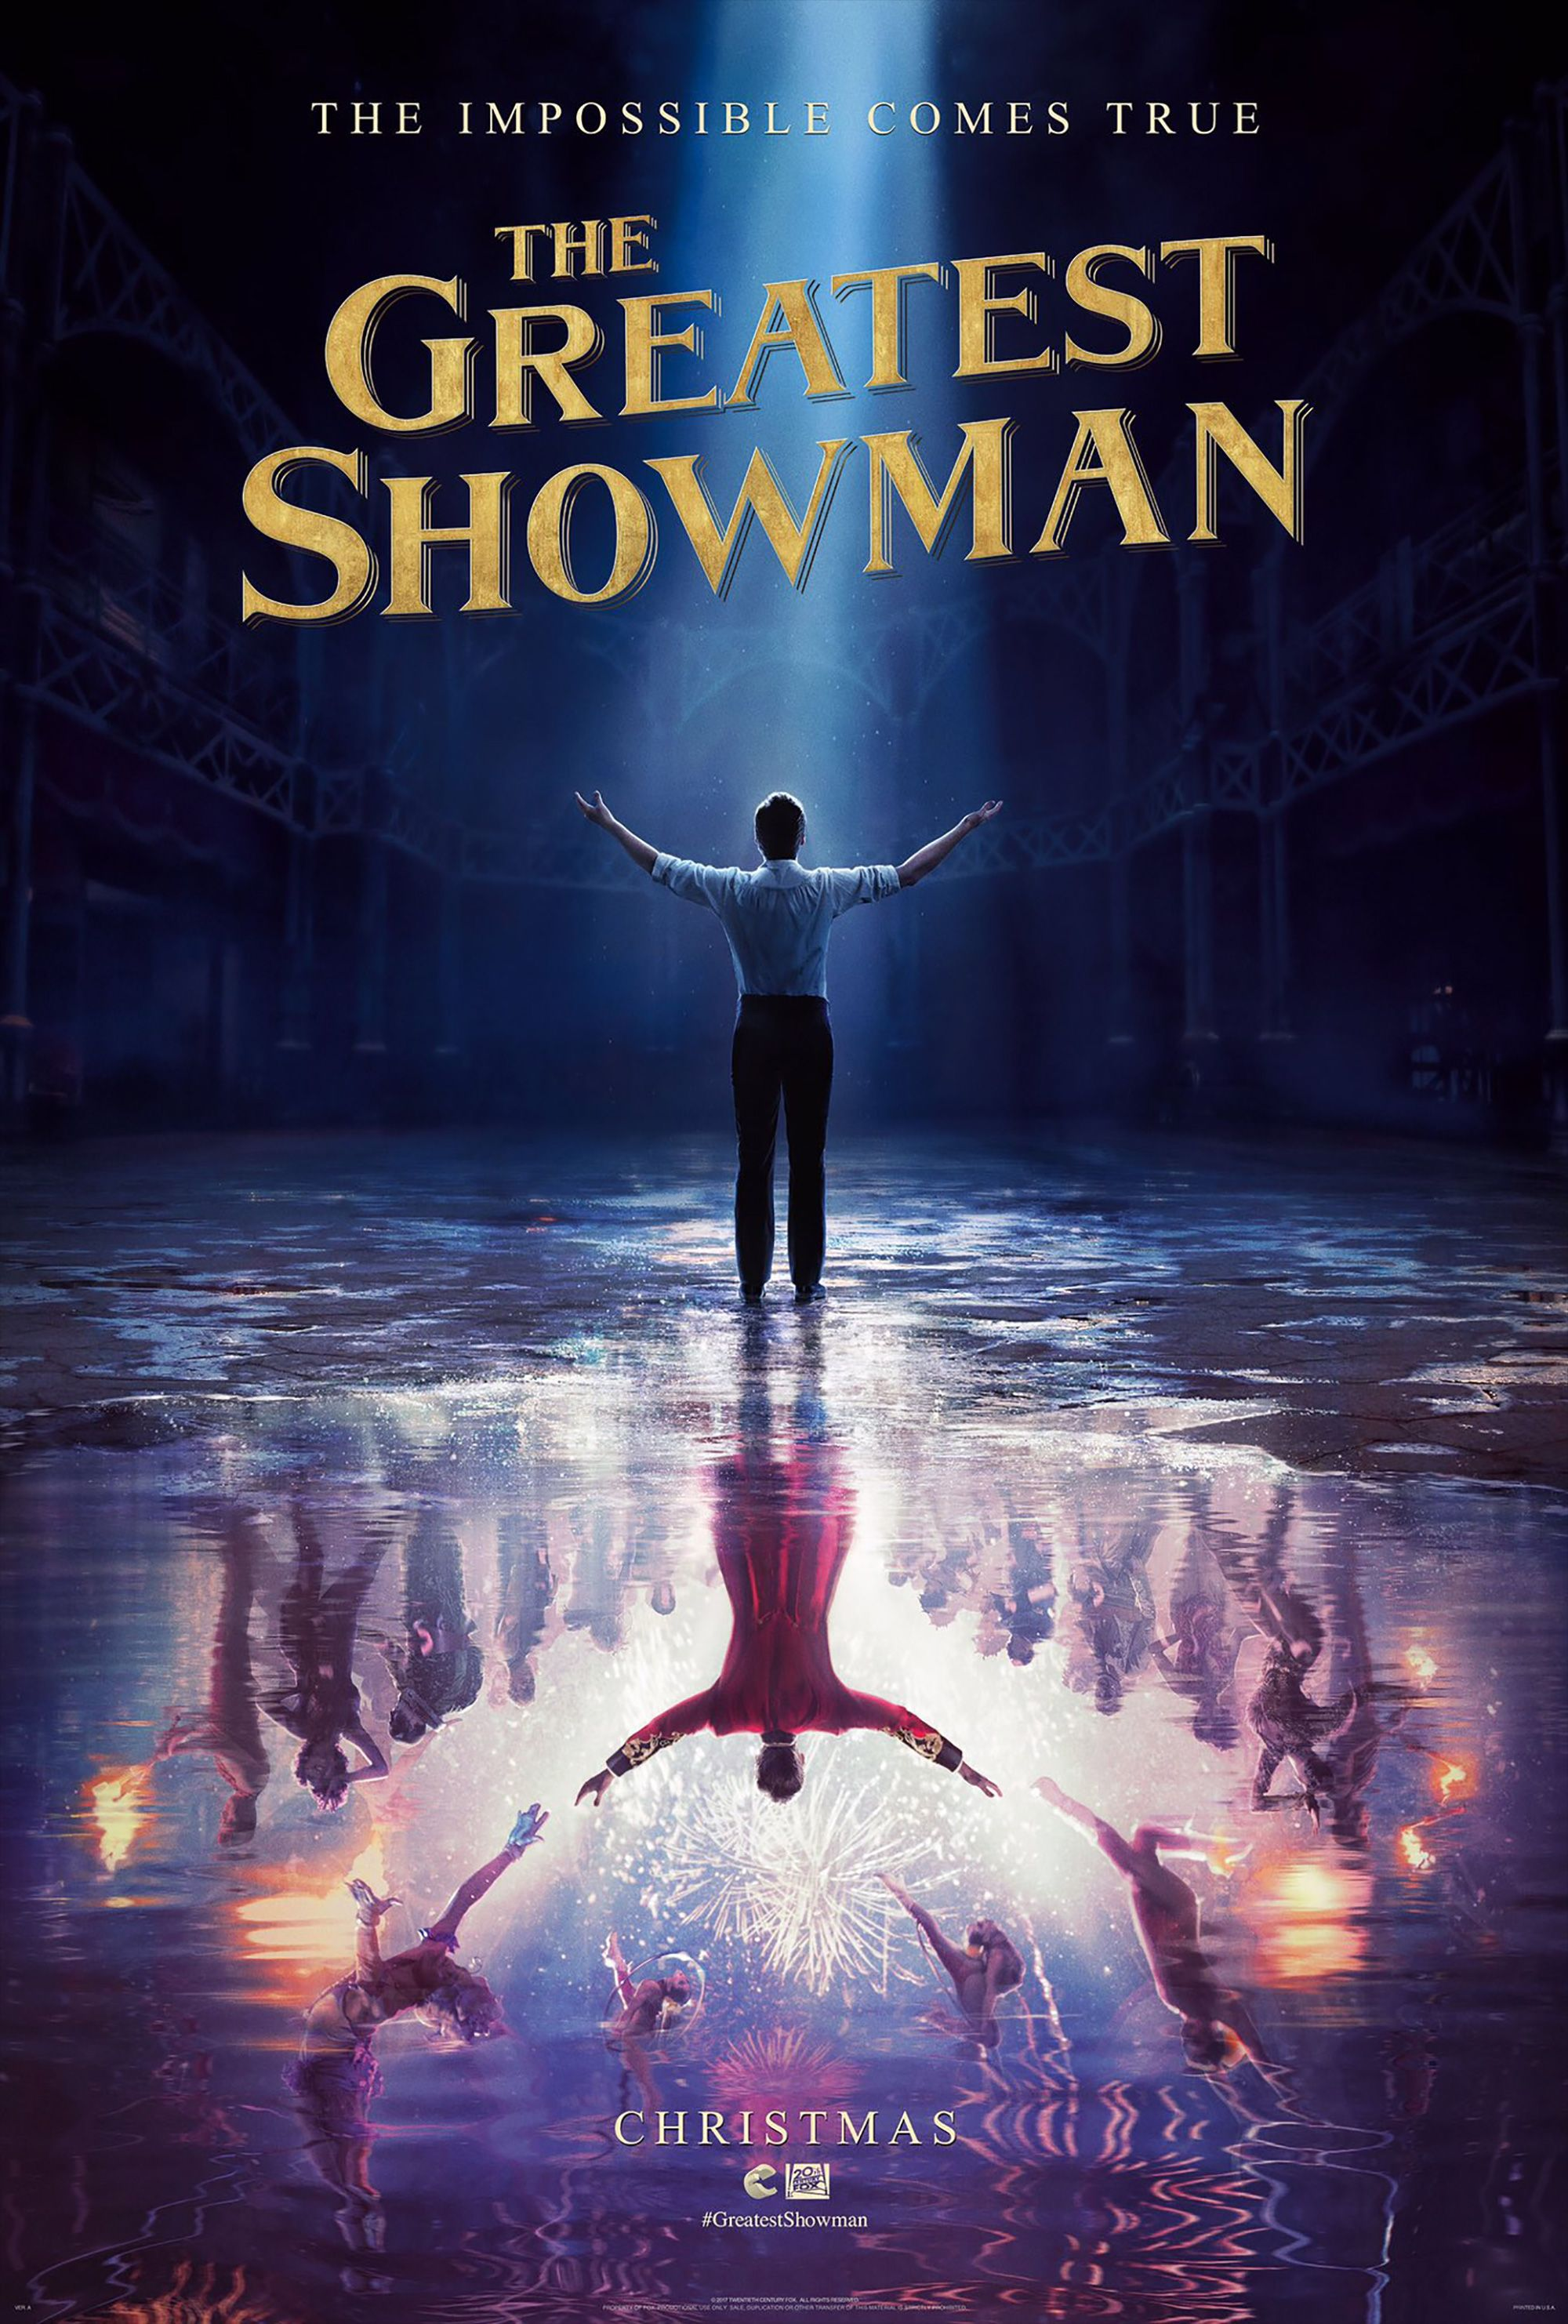 The Greatest Showman 2017 Movie Posters | JoBlo Posters